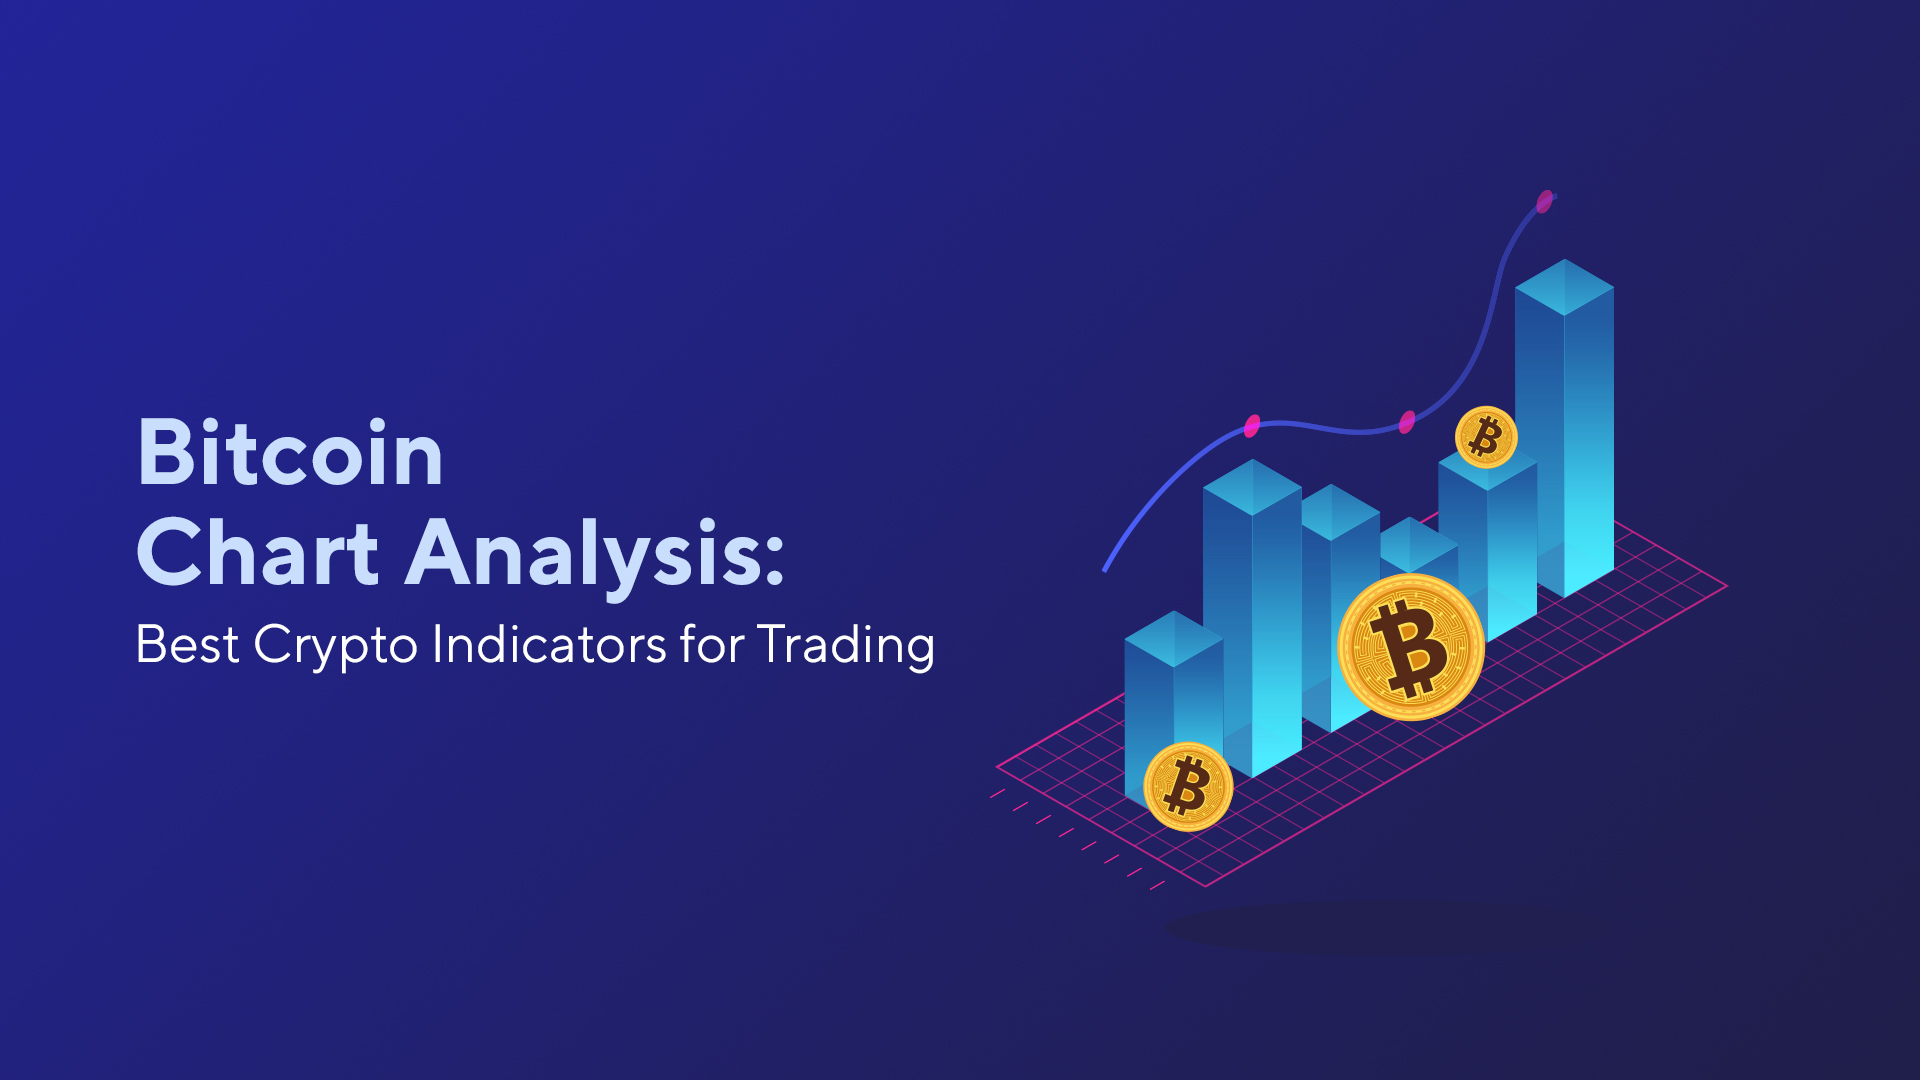 Bitcoin Chart Analysis: Best Crypto Indicators for Trading